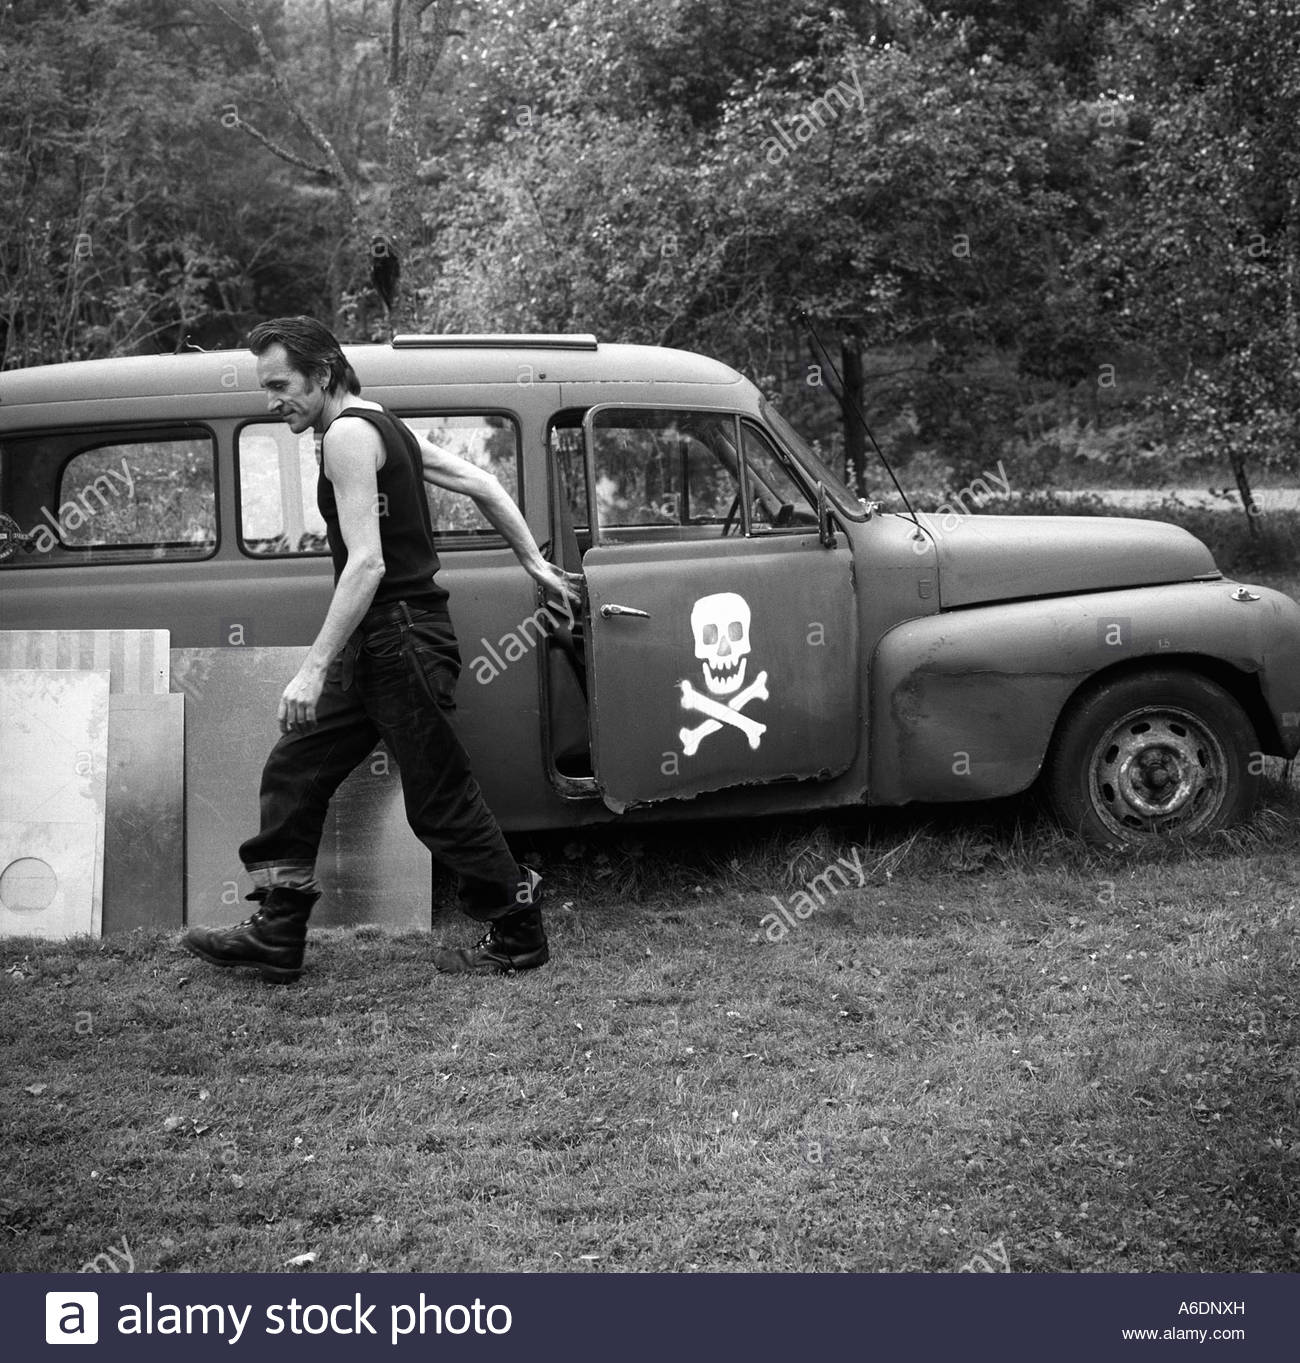 A man closing the door of an old car with the jolly Roger on it. Stockholm - Stock Image